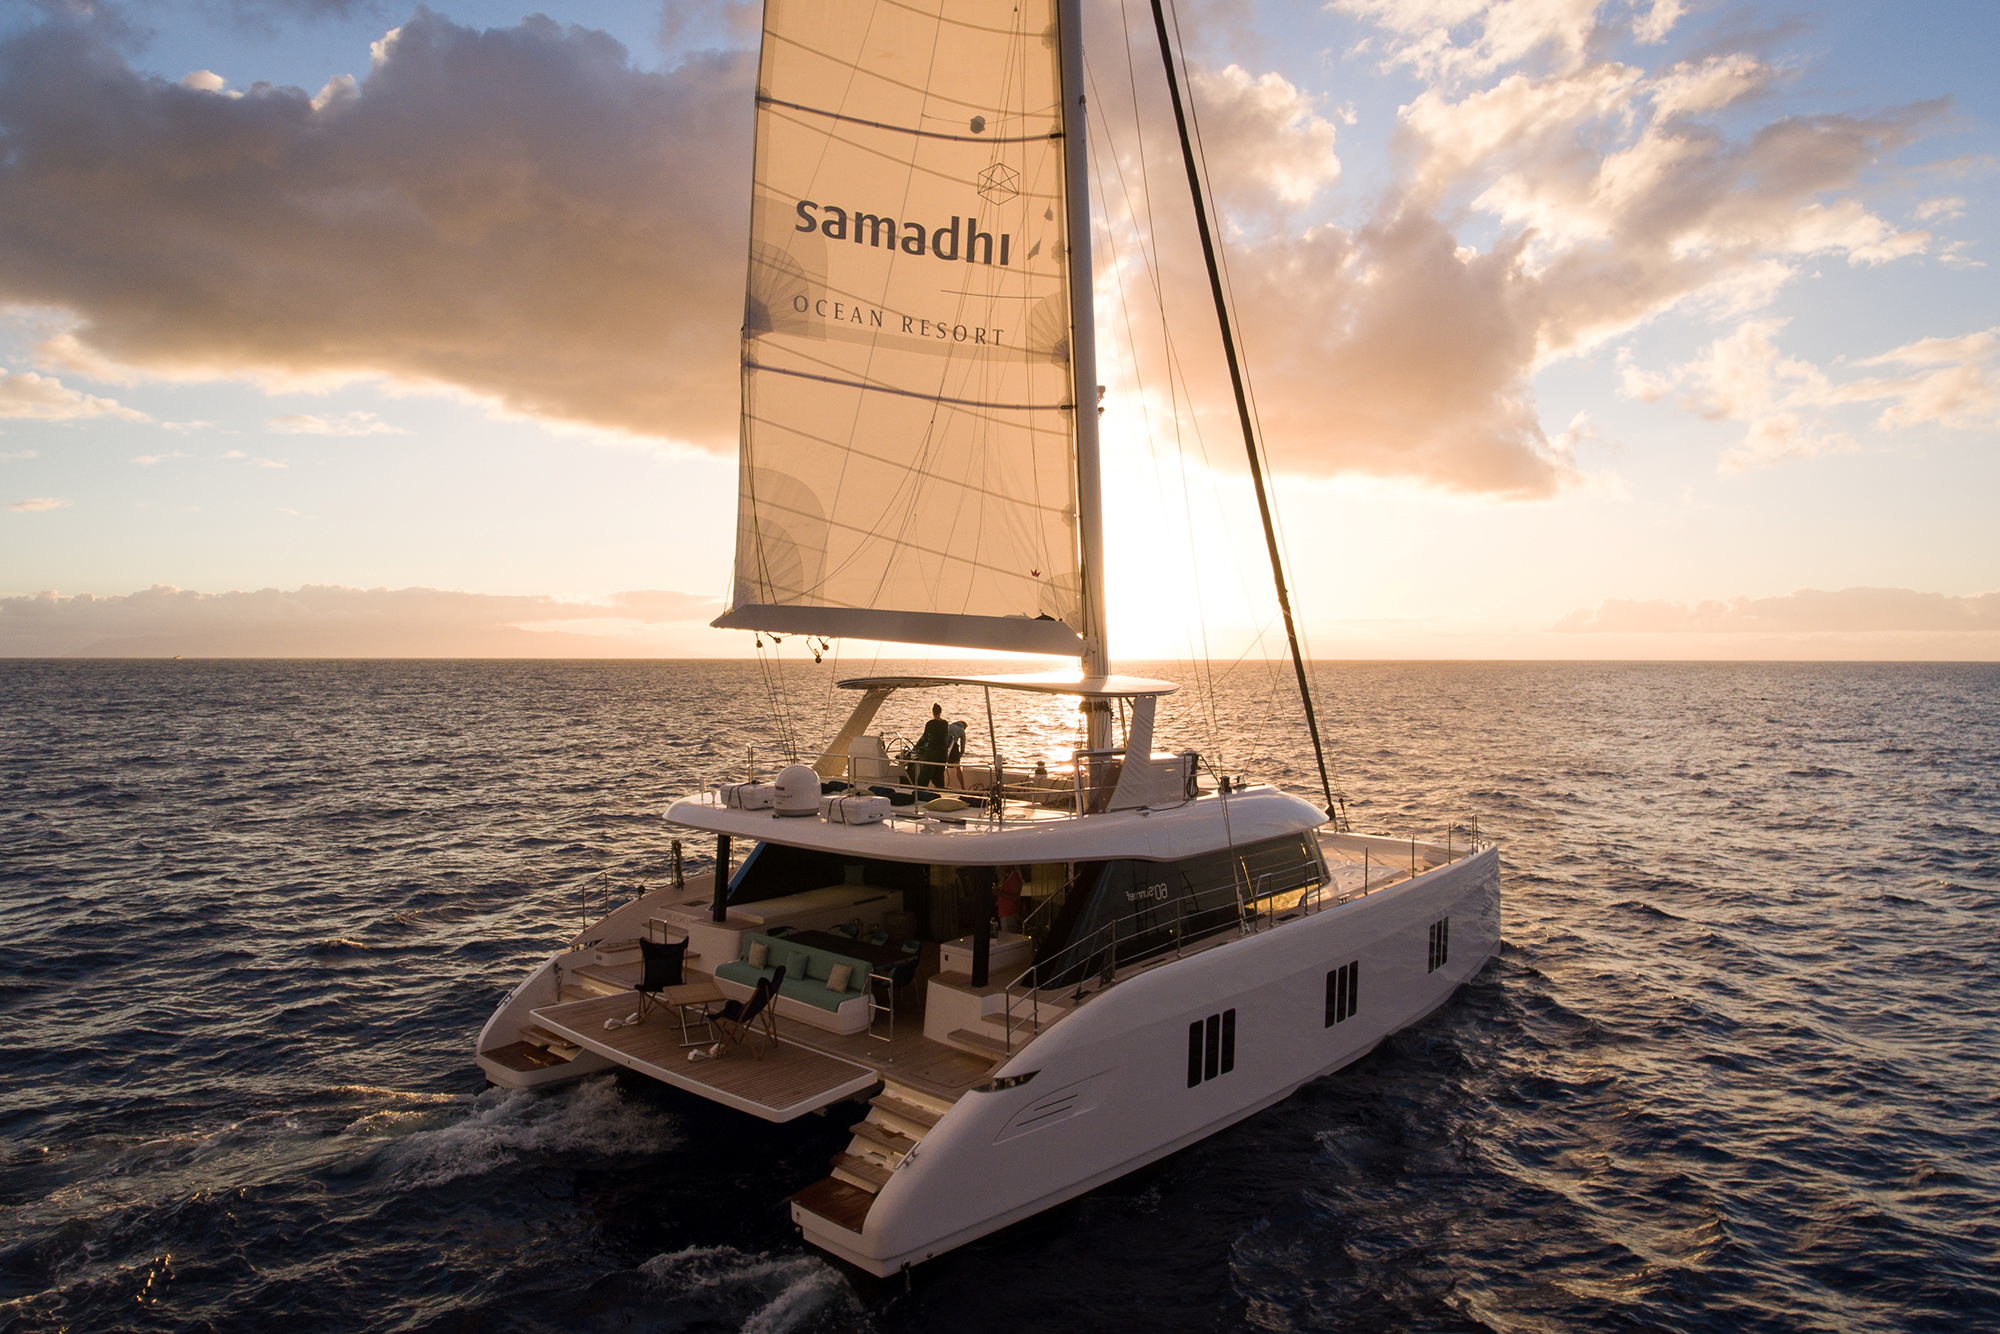 Sunreef 60 Samadhi